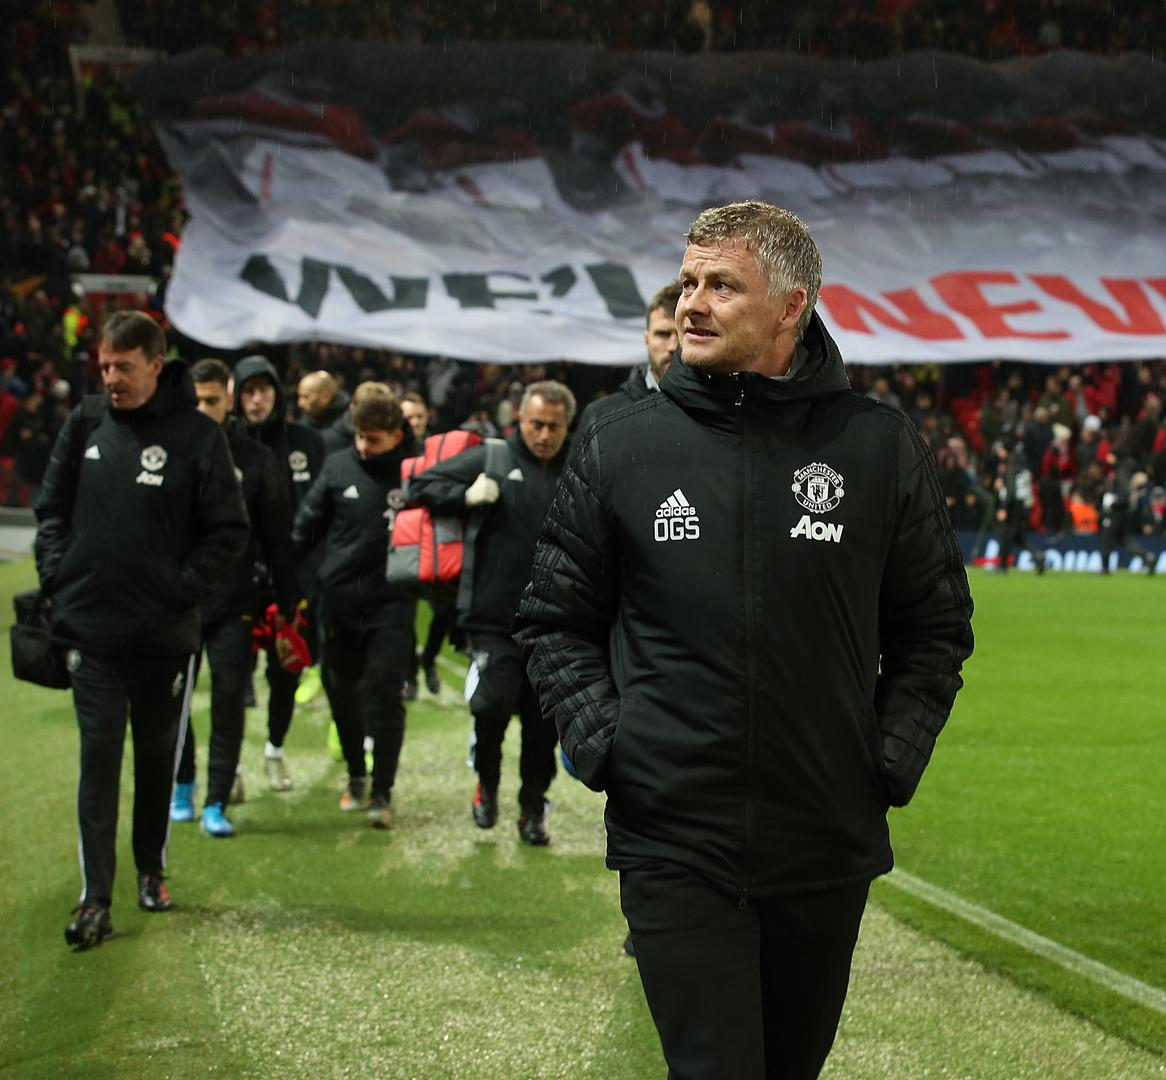 Ole Gunnar Solskjaer walks out for the Partizan Belgrade game at Old Trafford